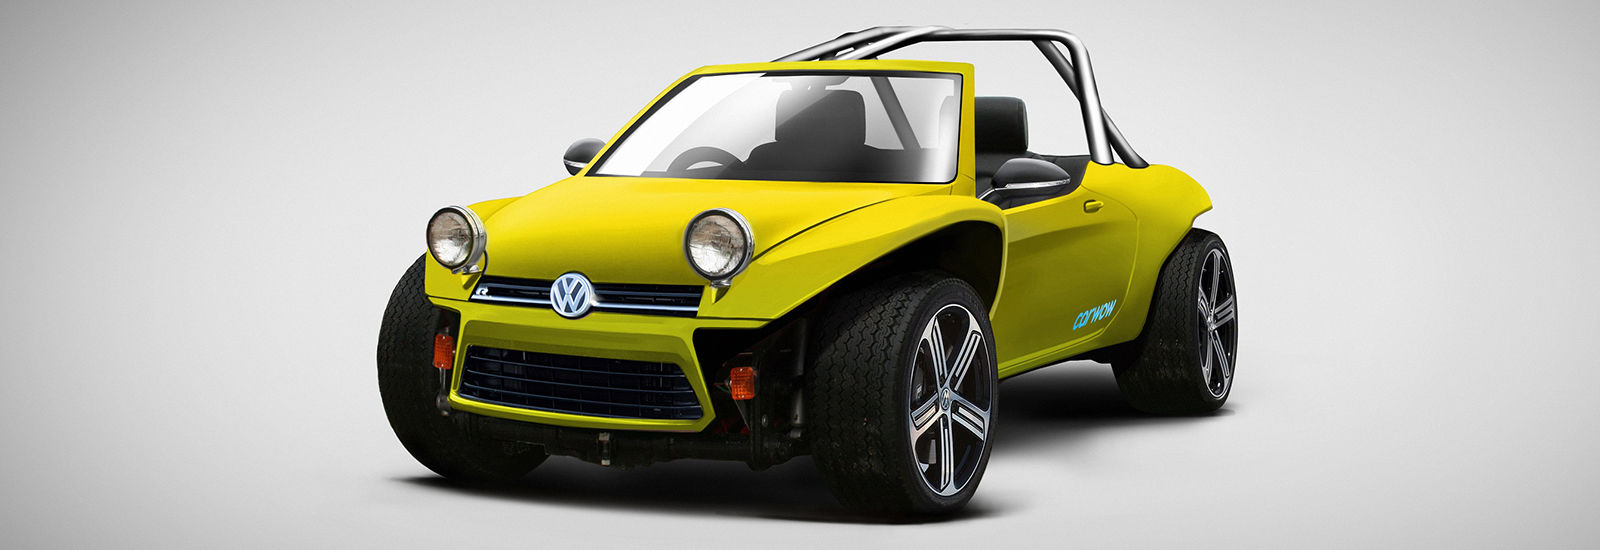 K-carwow-VW-Golf-Buggy-cropped